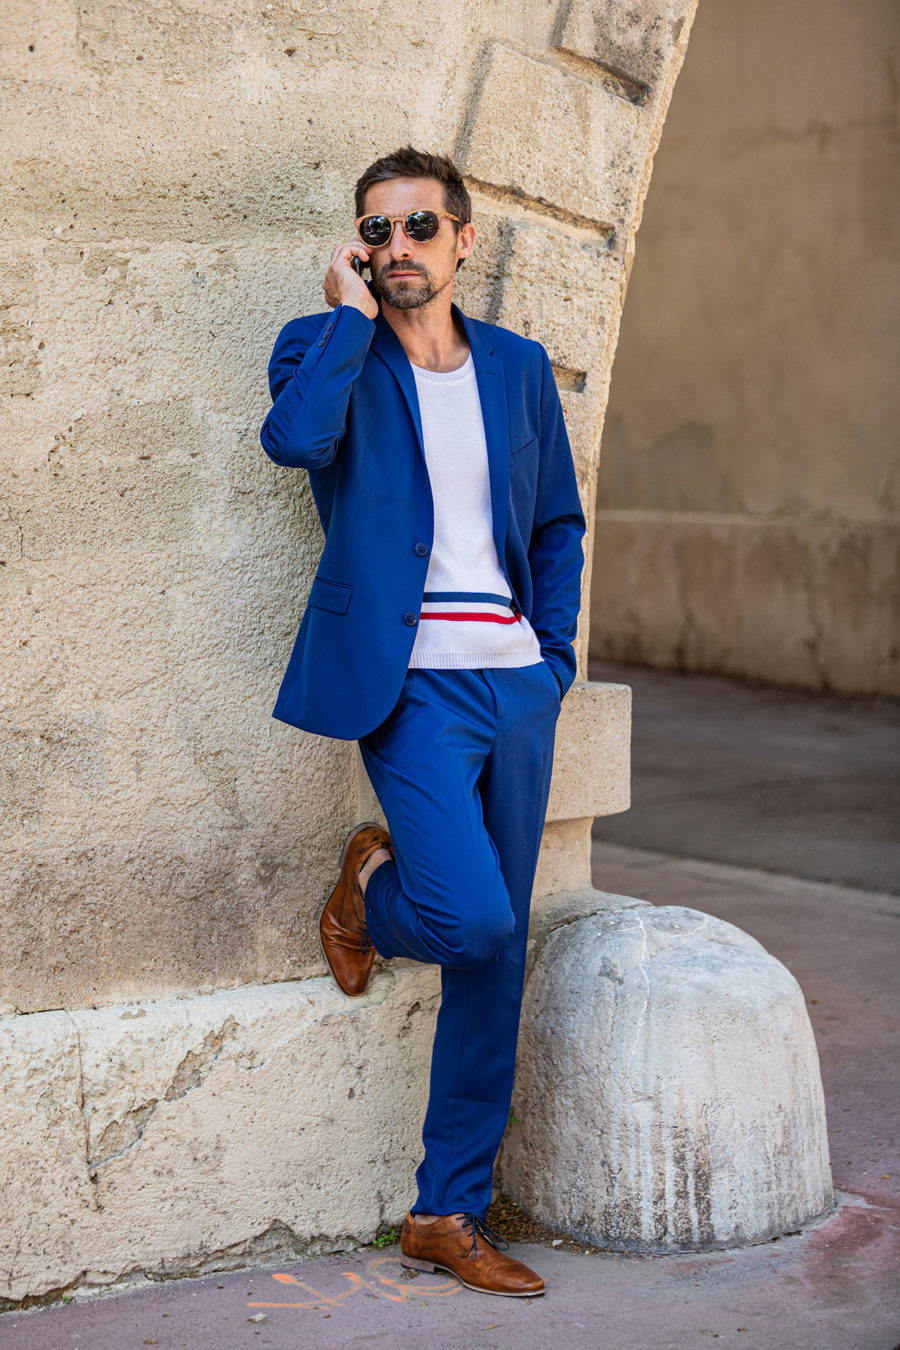 tank-top-men-amboise-merino-wool-made-in-france-with-suit